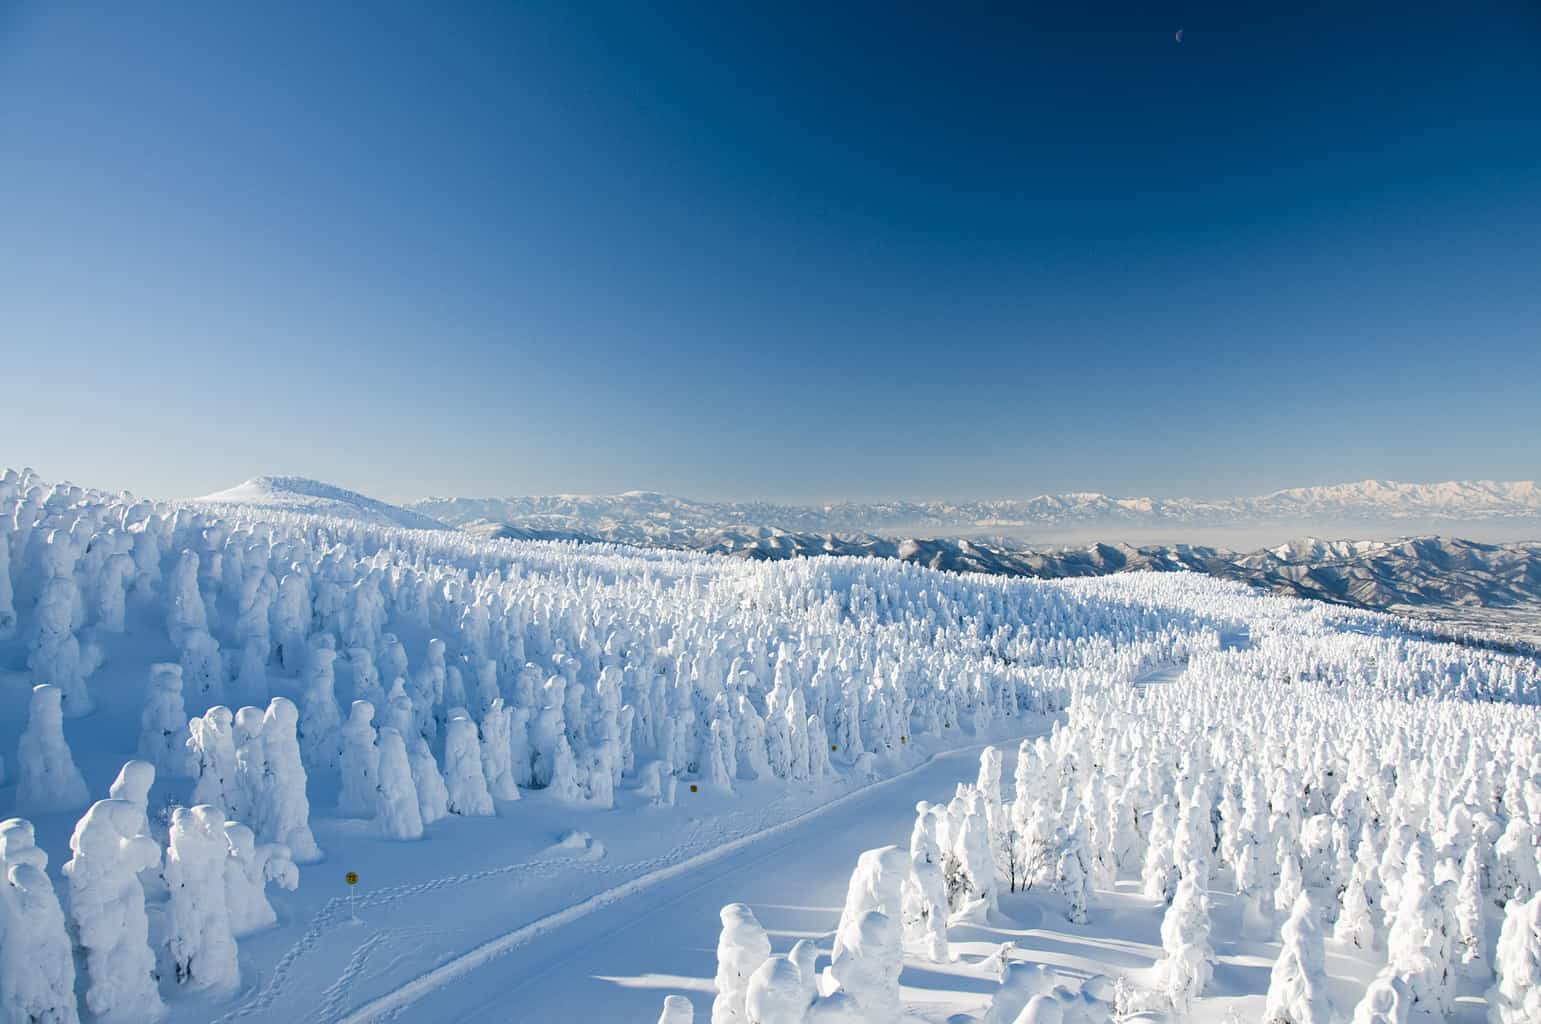 Japan-Niseko-Snowy-Trees-Mountains